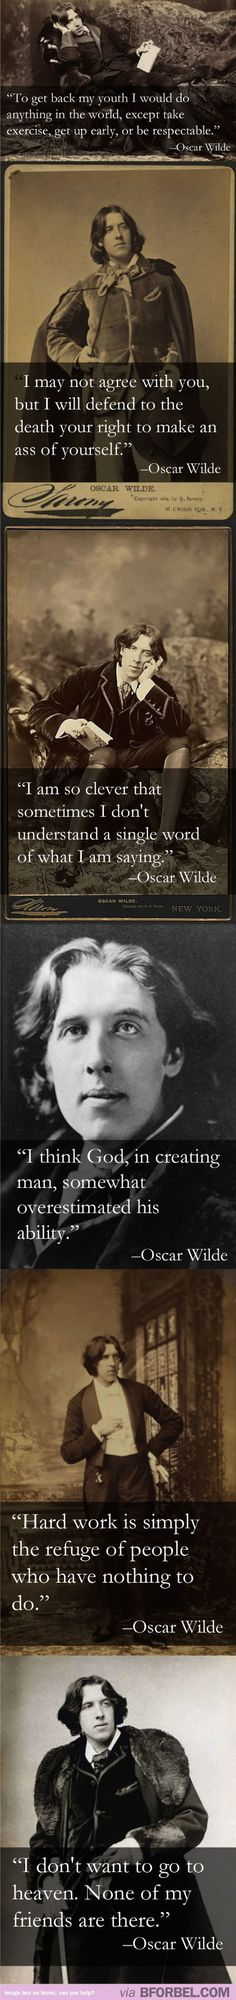 Oscar Wilde is just the sassiest person who lived in his time Yes.